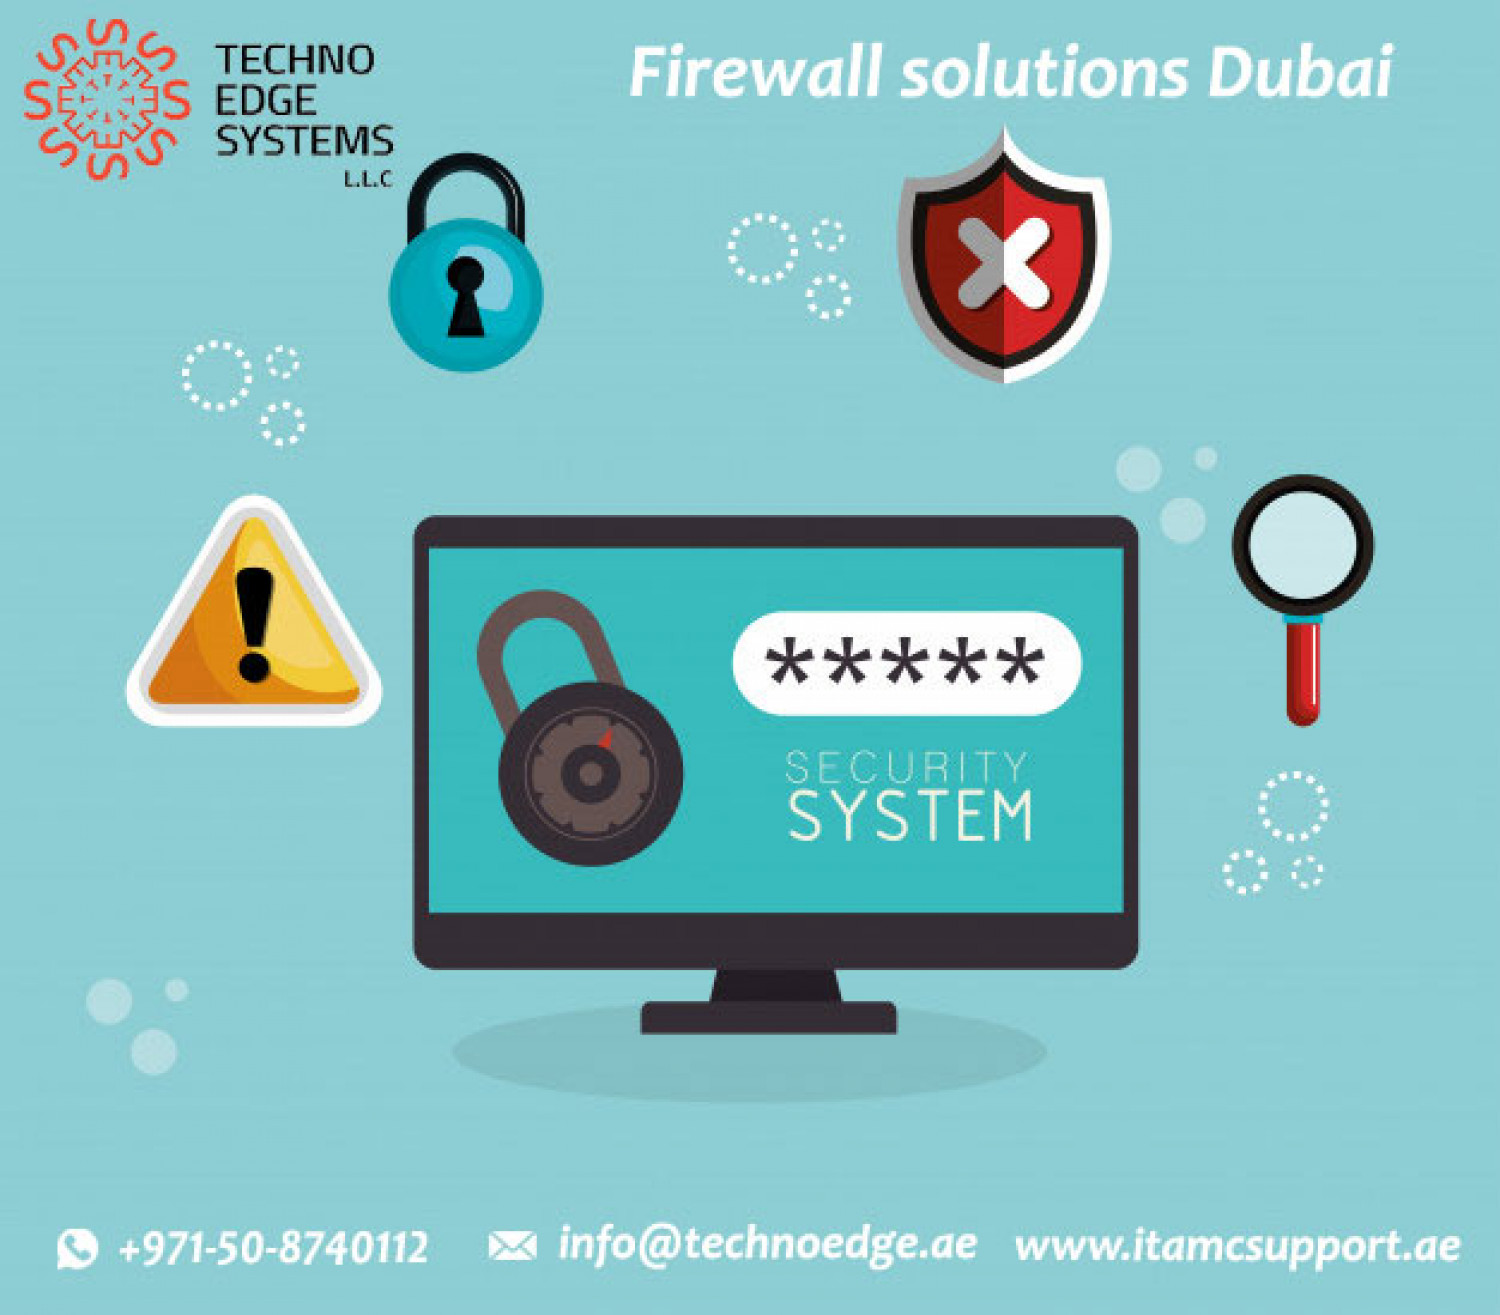 Best company for firewall solutions in dubai Infographic